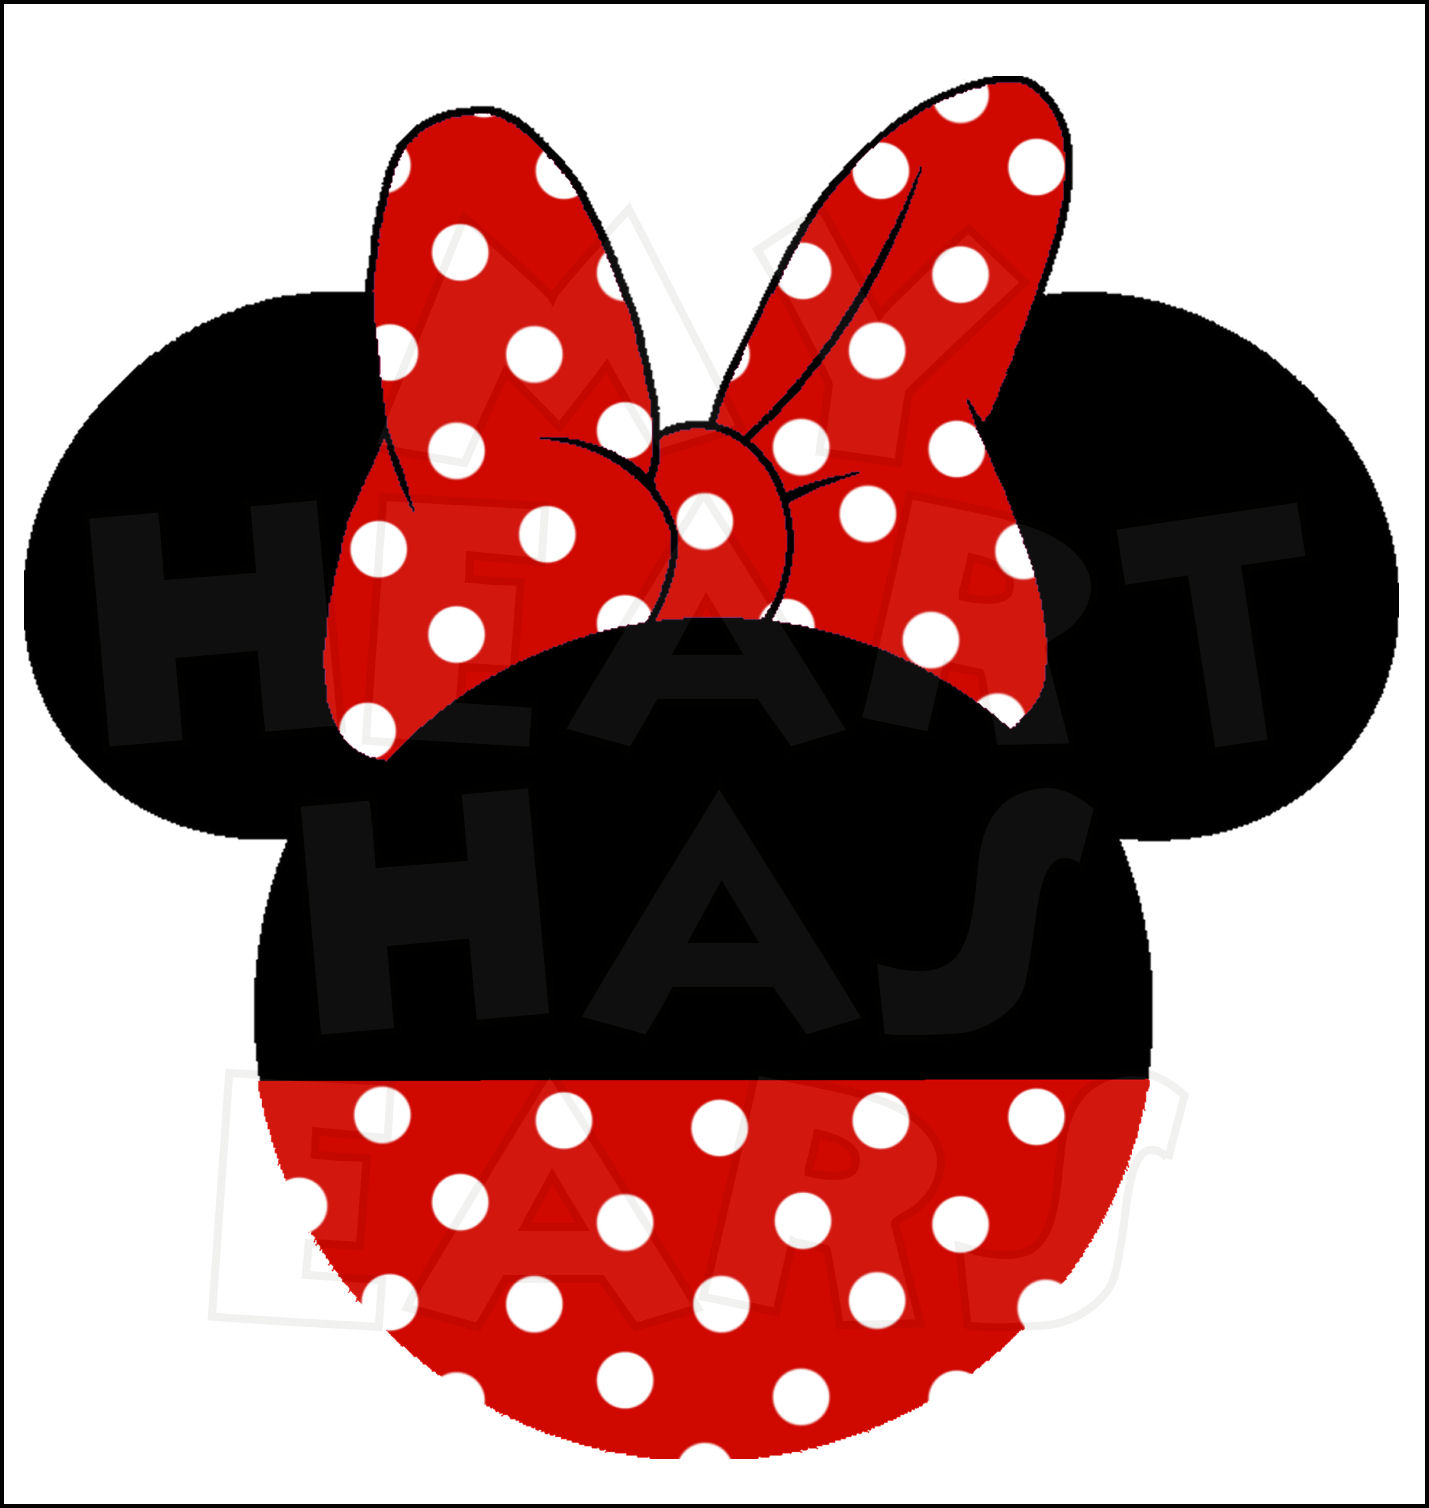 Red Minnie Mouse Face Clipart Panda Free-Red Minnie Mouse Face Clipart Panda Free Clipart Images-14